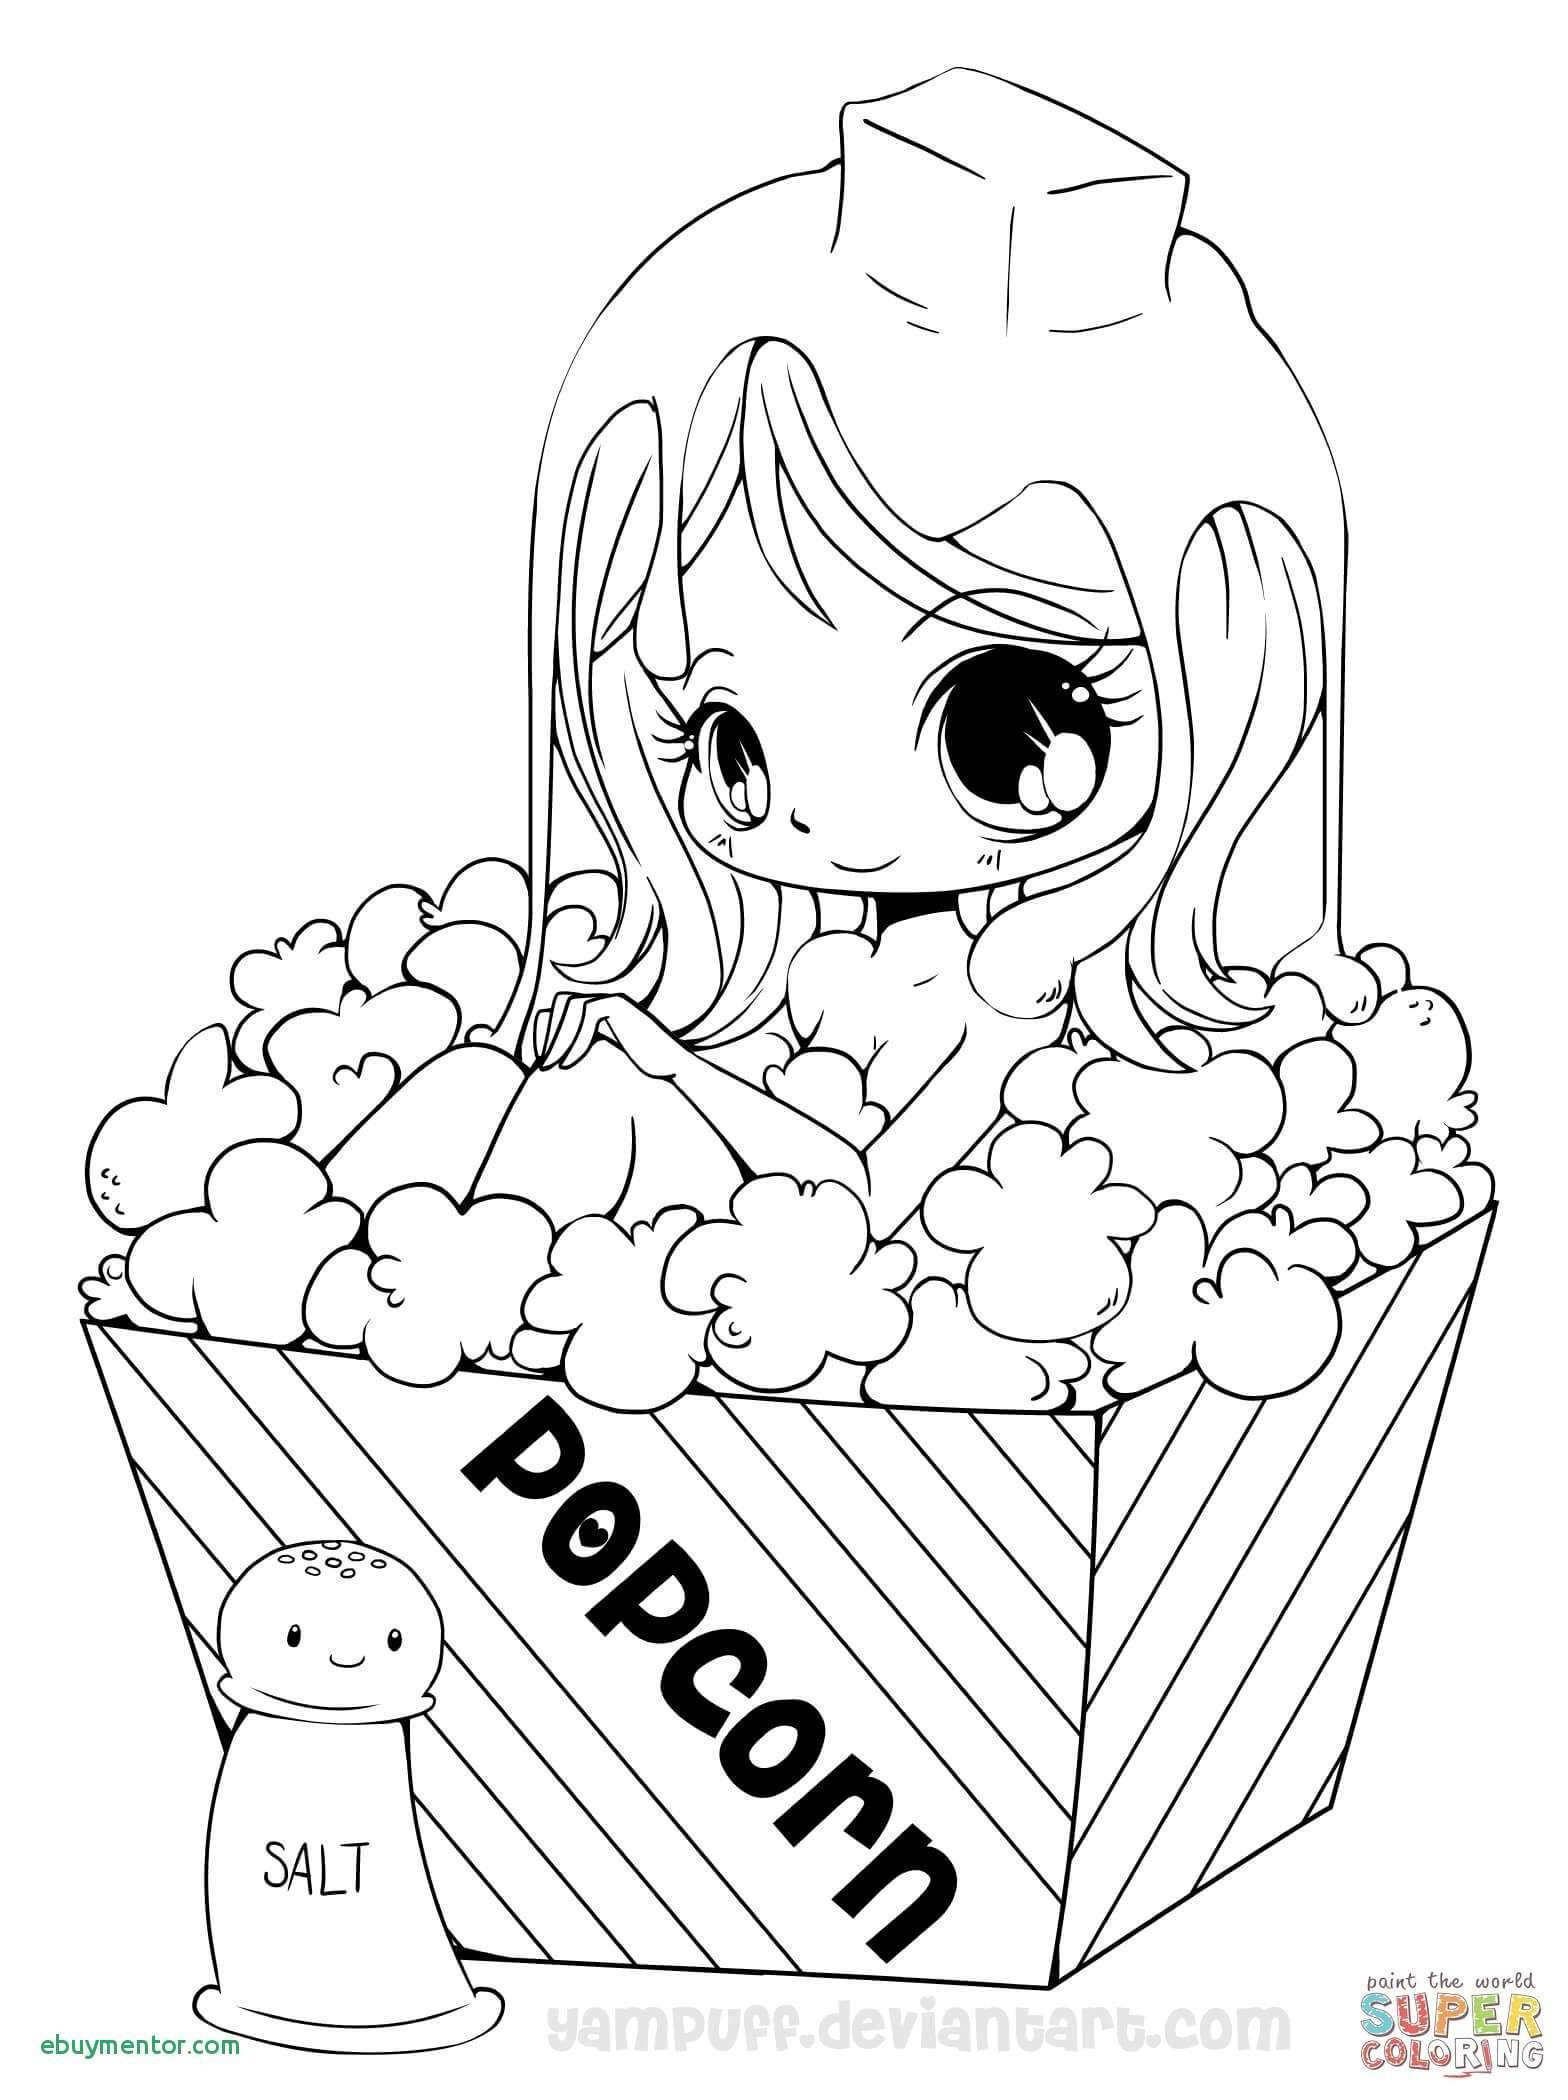 Printable Superhero Coloring Pages New Pretty Barbie Coloring Pages Elegant Barbie Free Super Chibi Coloring Pages Princess Coloring Pages Witch Coloring Pages